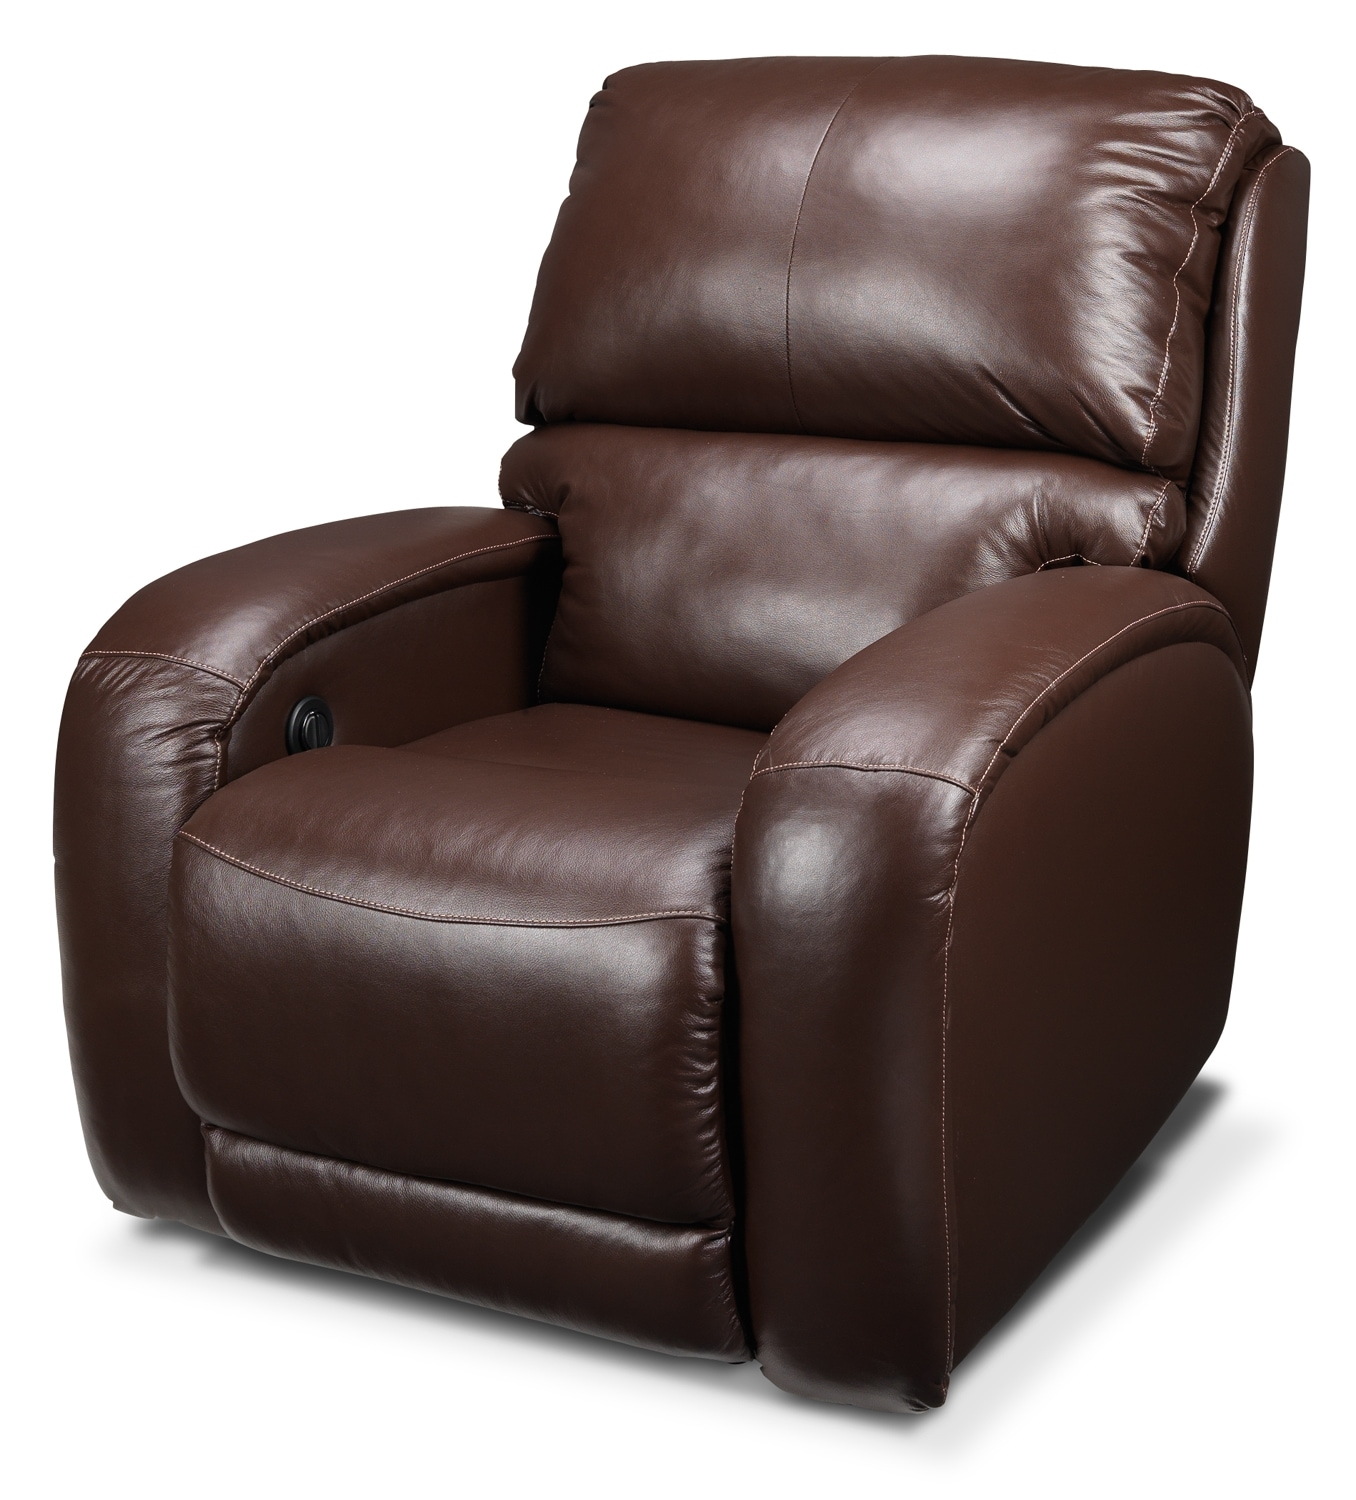 [Fabian Power Recliner - Coffee]